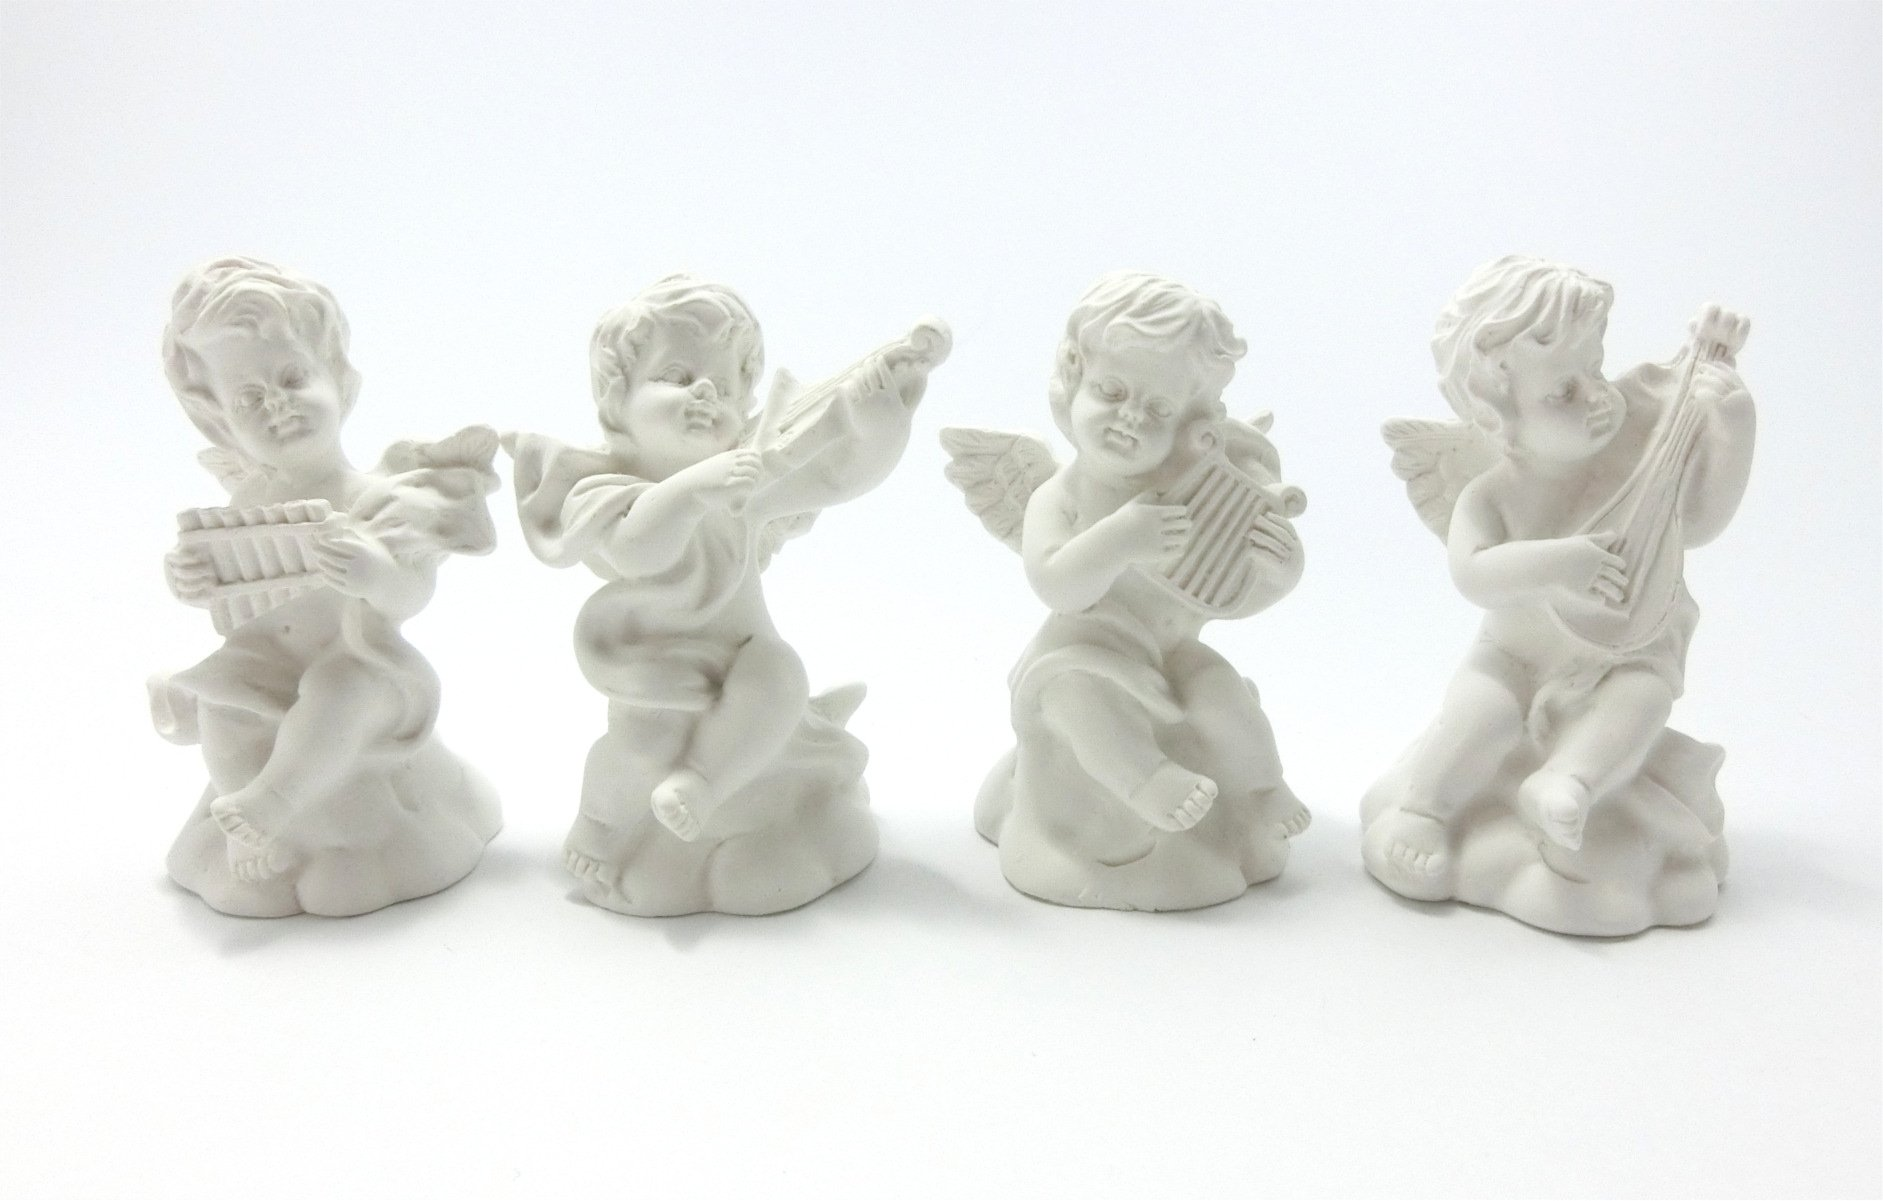 [Seoveru] THEOVEL plaster-style mini replica set of 4 Angel / in Drawing replication model interior / angel T0386